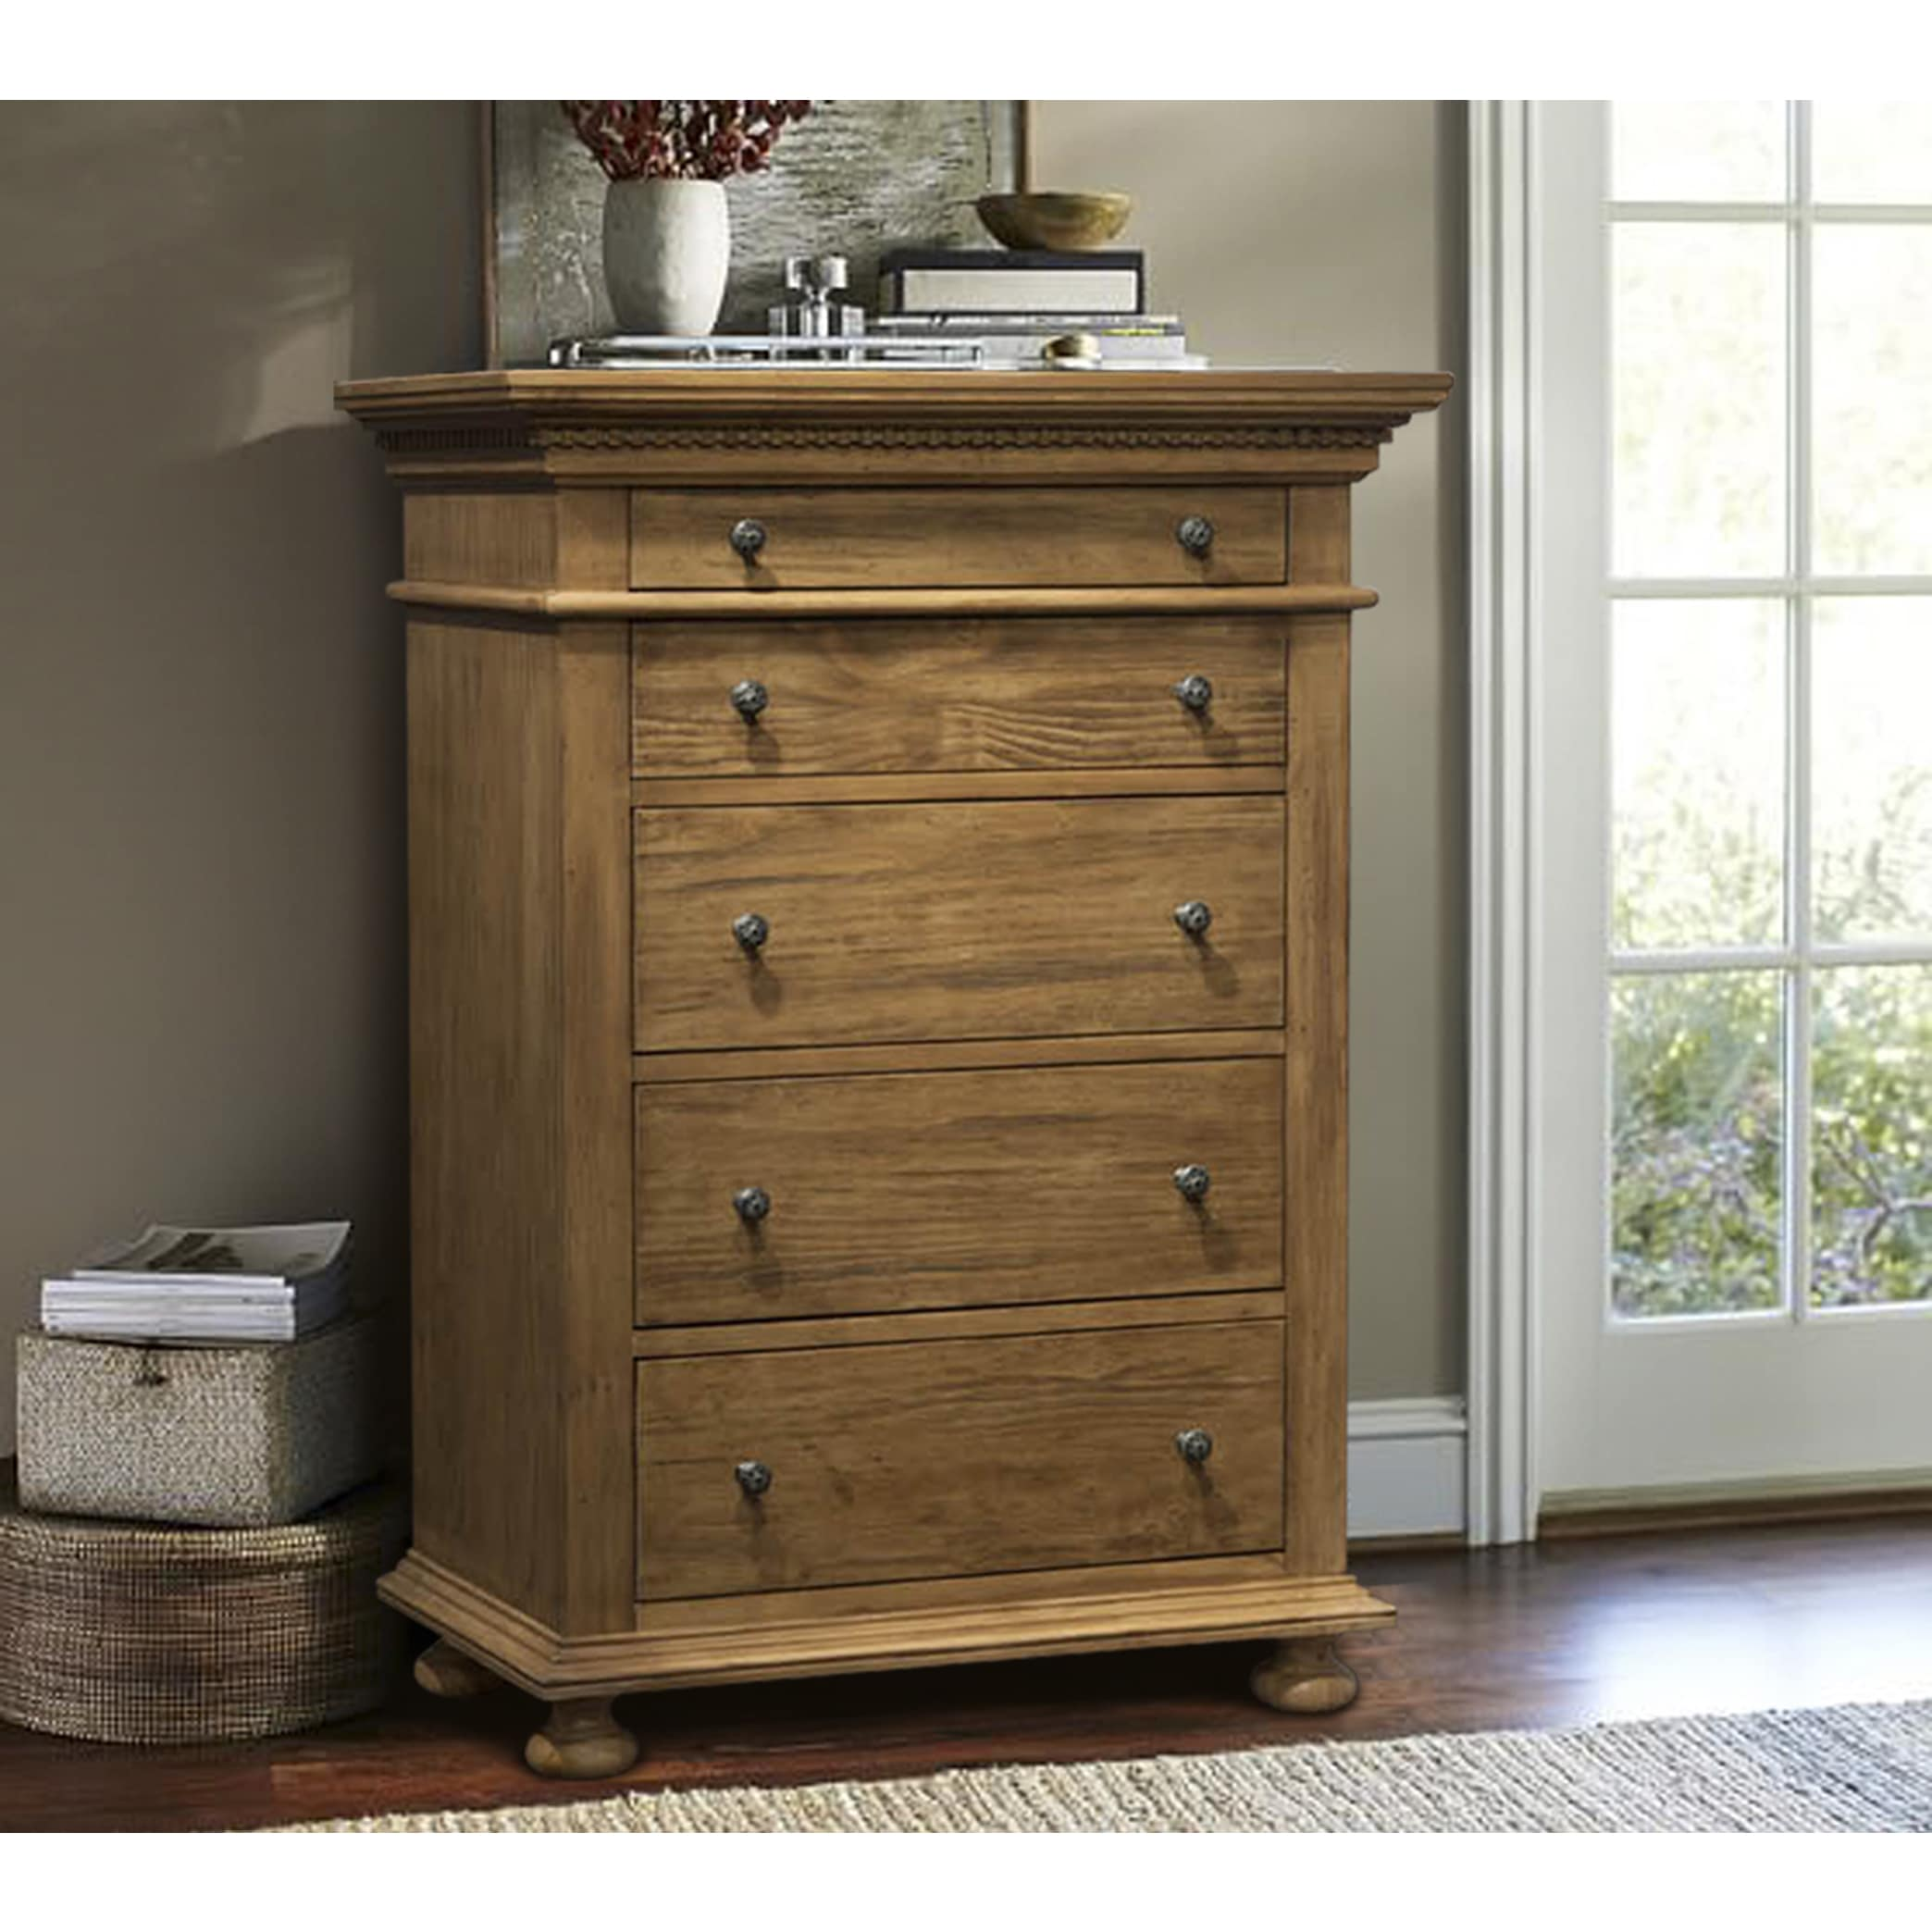 599789ac61e8 Shop Addington Hill 5-drawer Chest - On Sale - Free Shipping Today ...